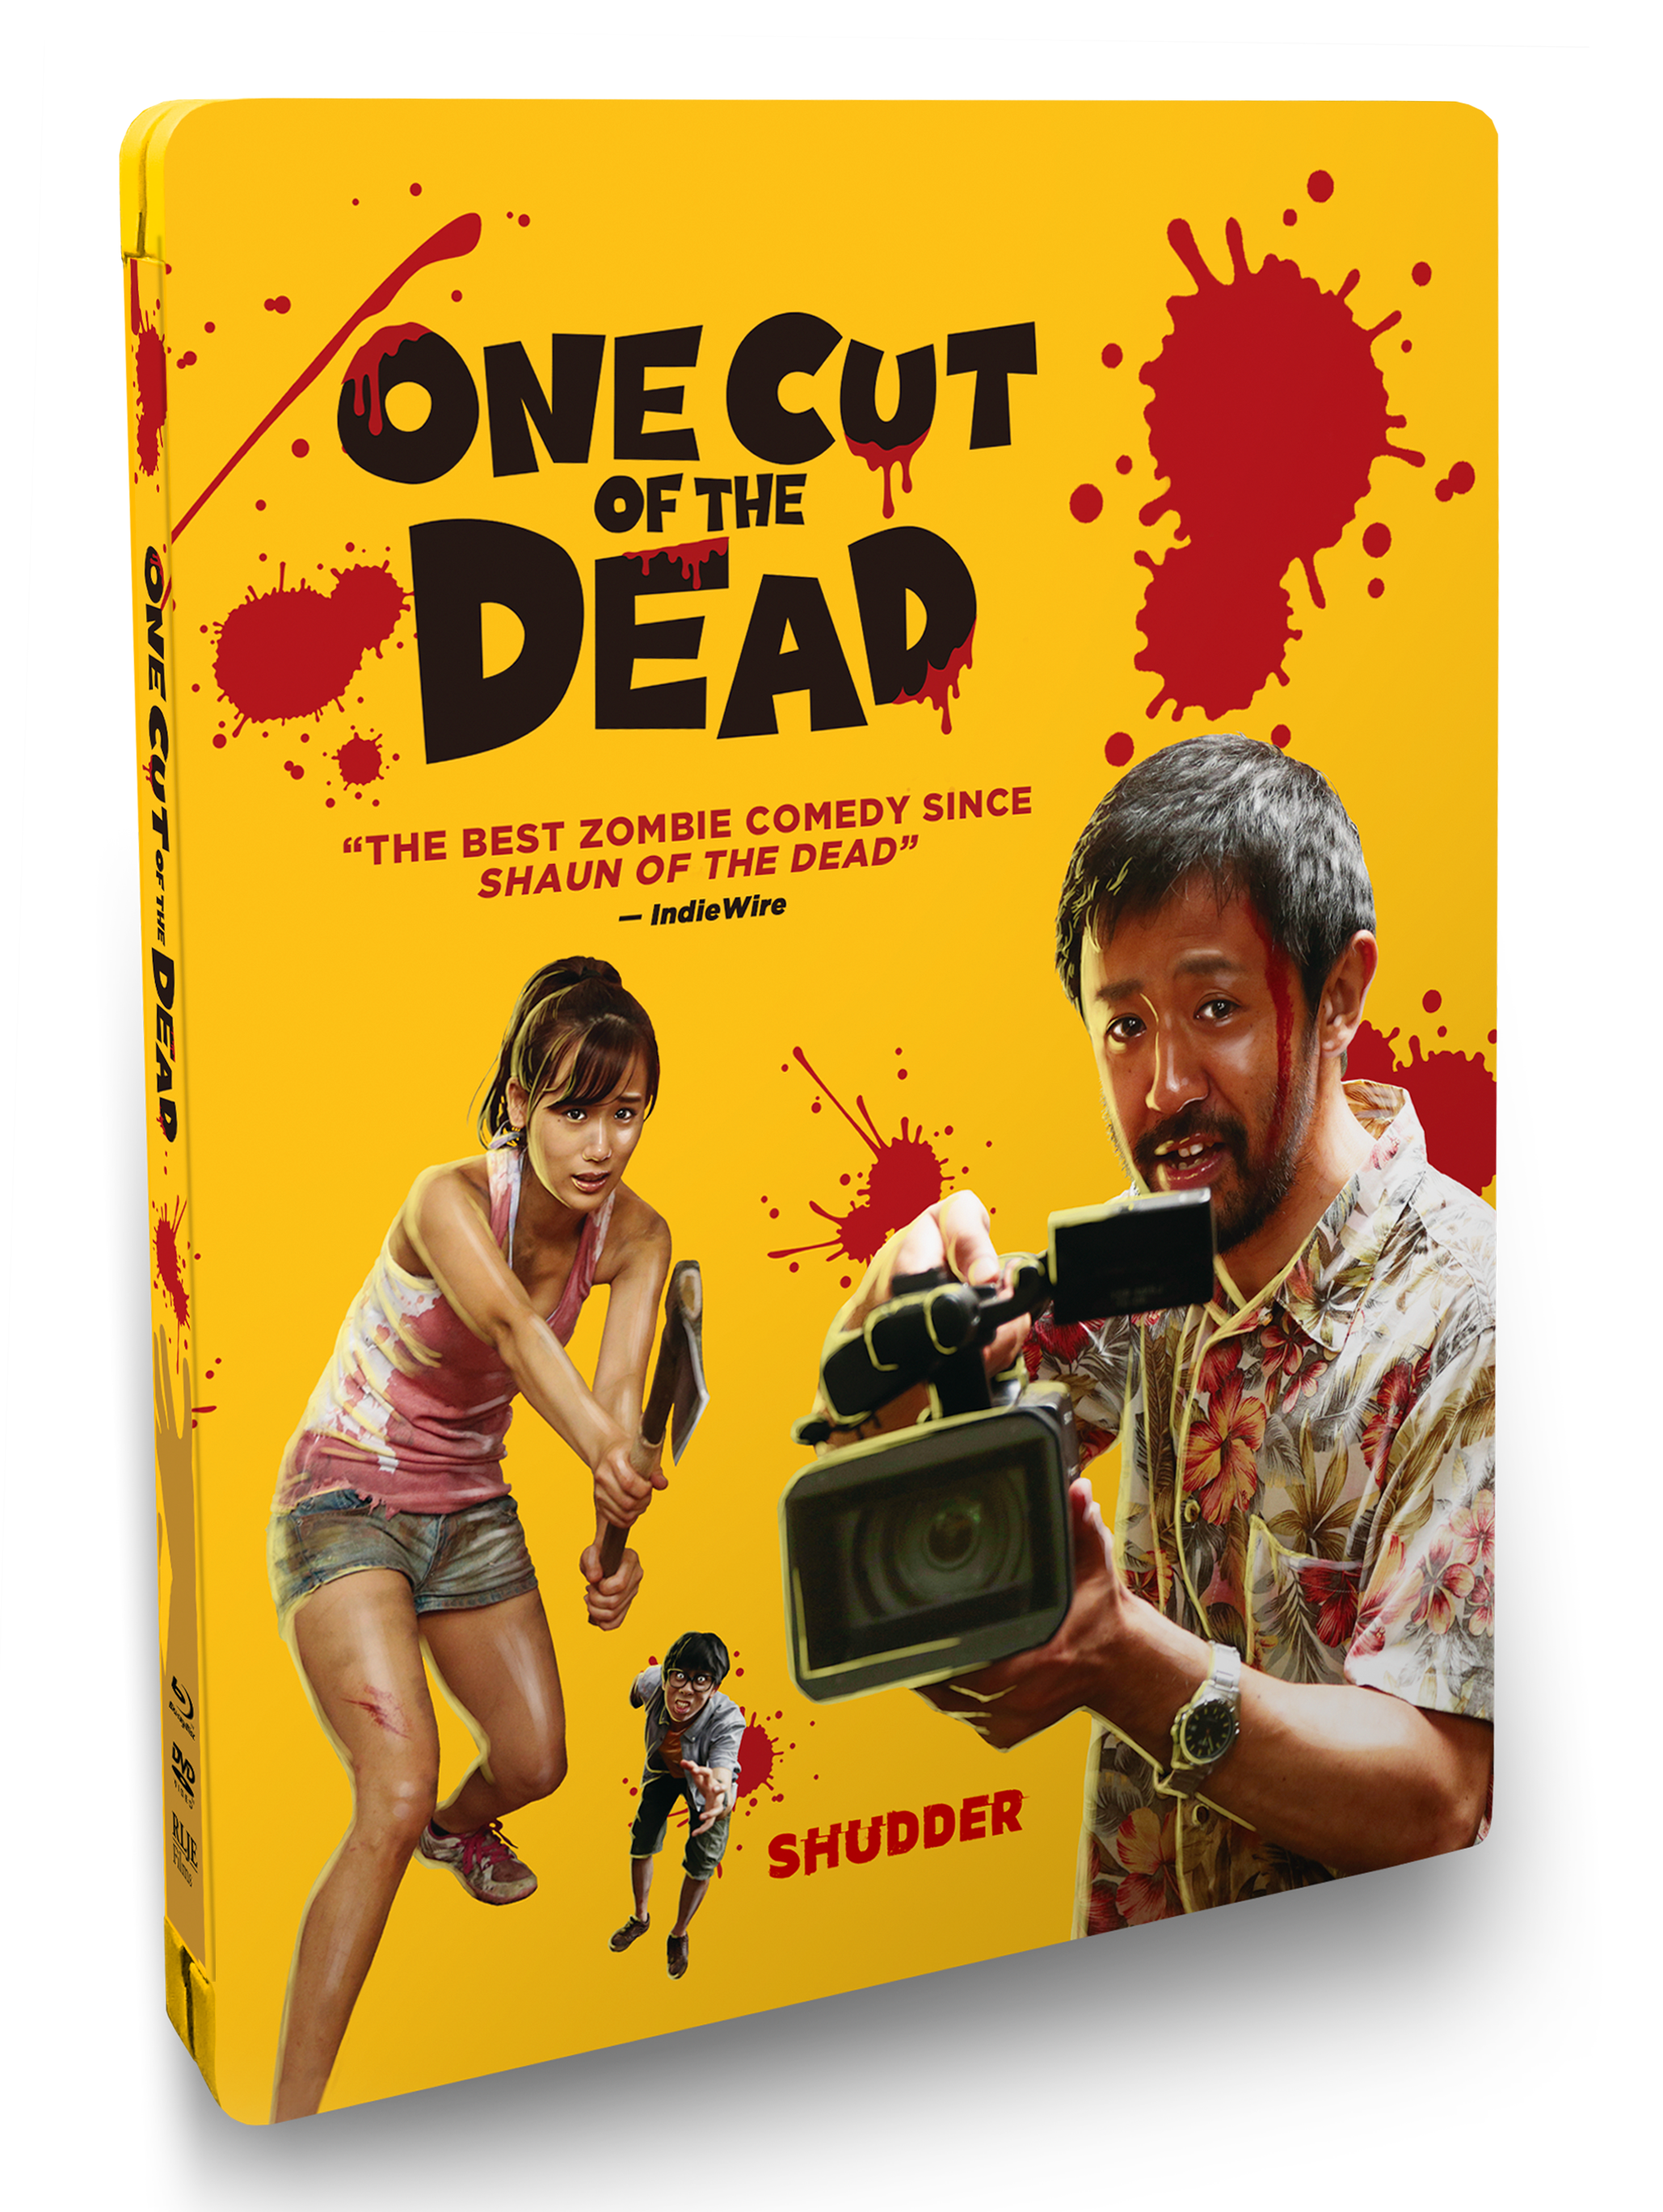 ONE CUT OF THE DEAD Steelbook Cover